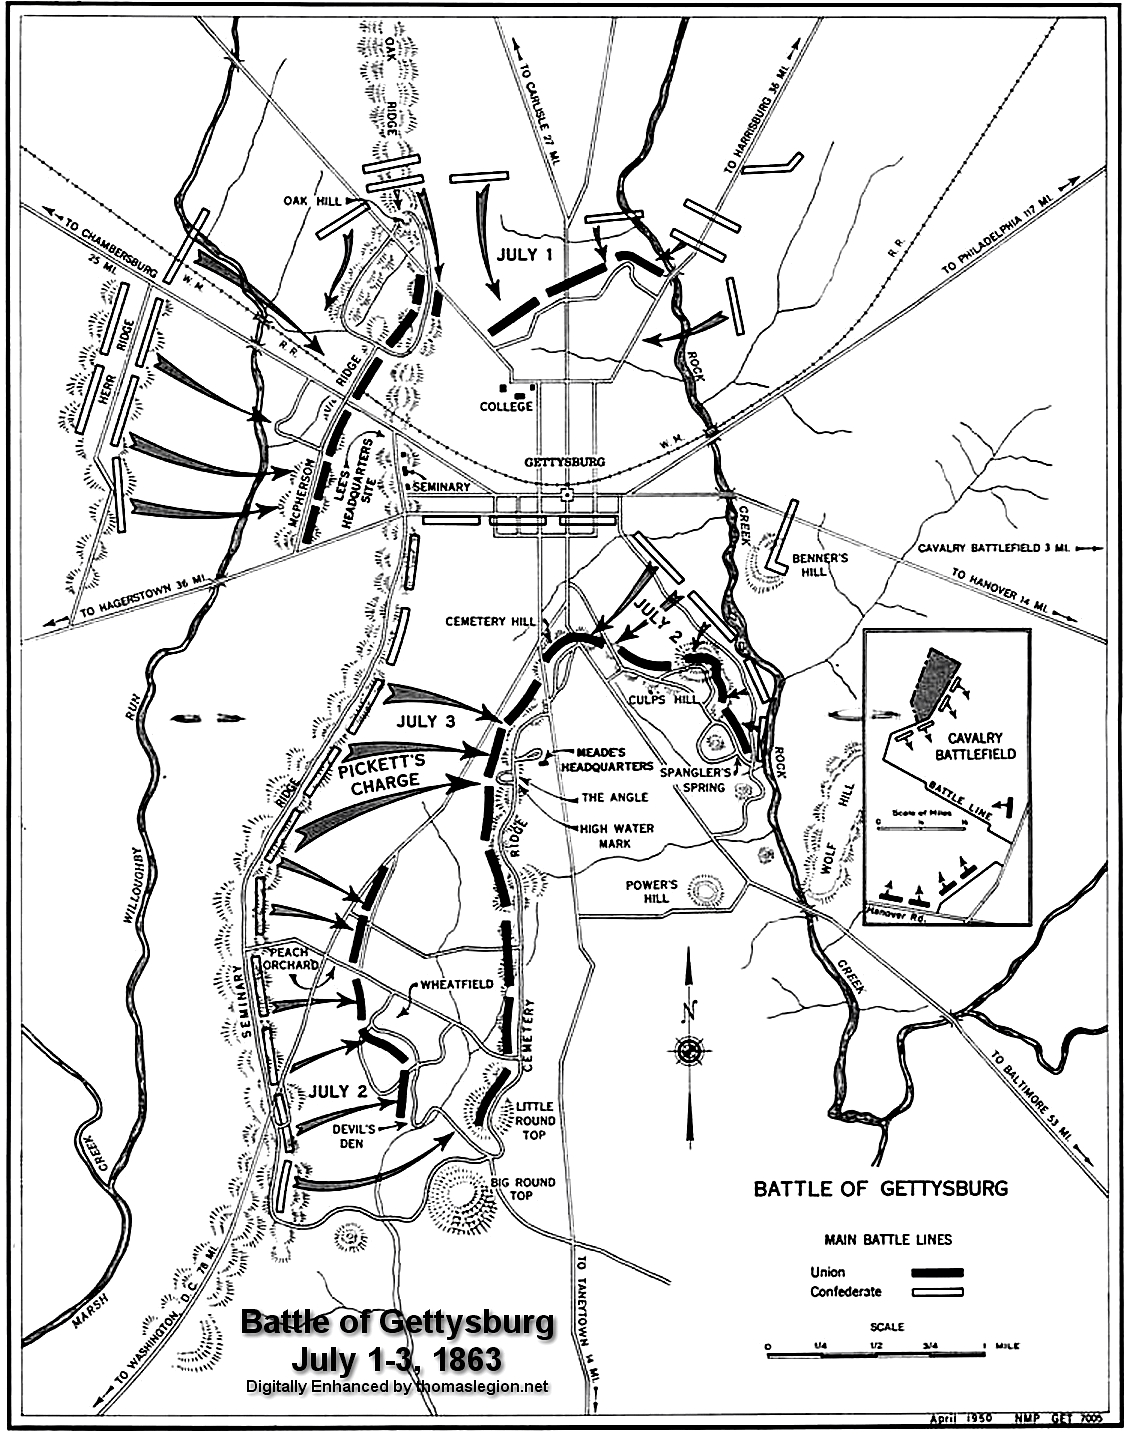 Pickett's Charge and Battle of Gettysburg.jpg